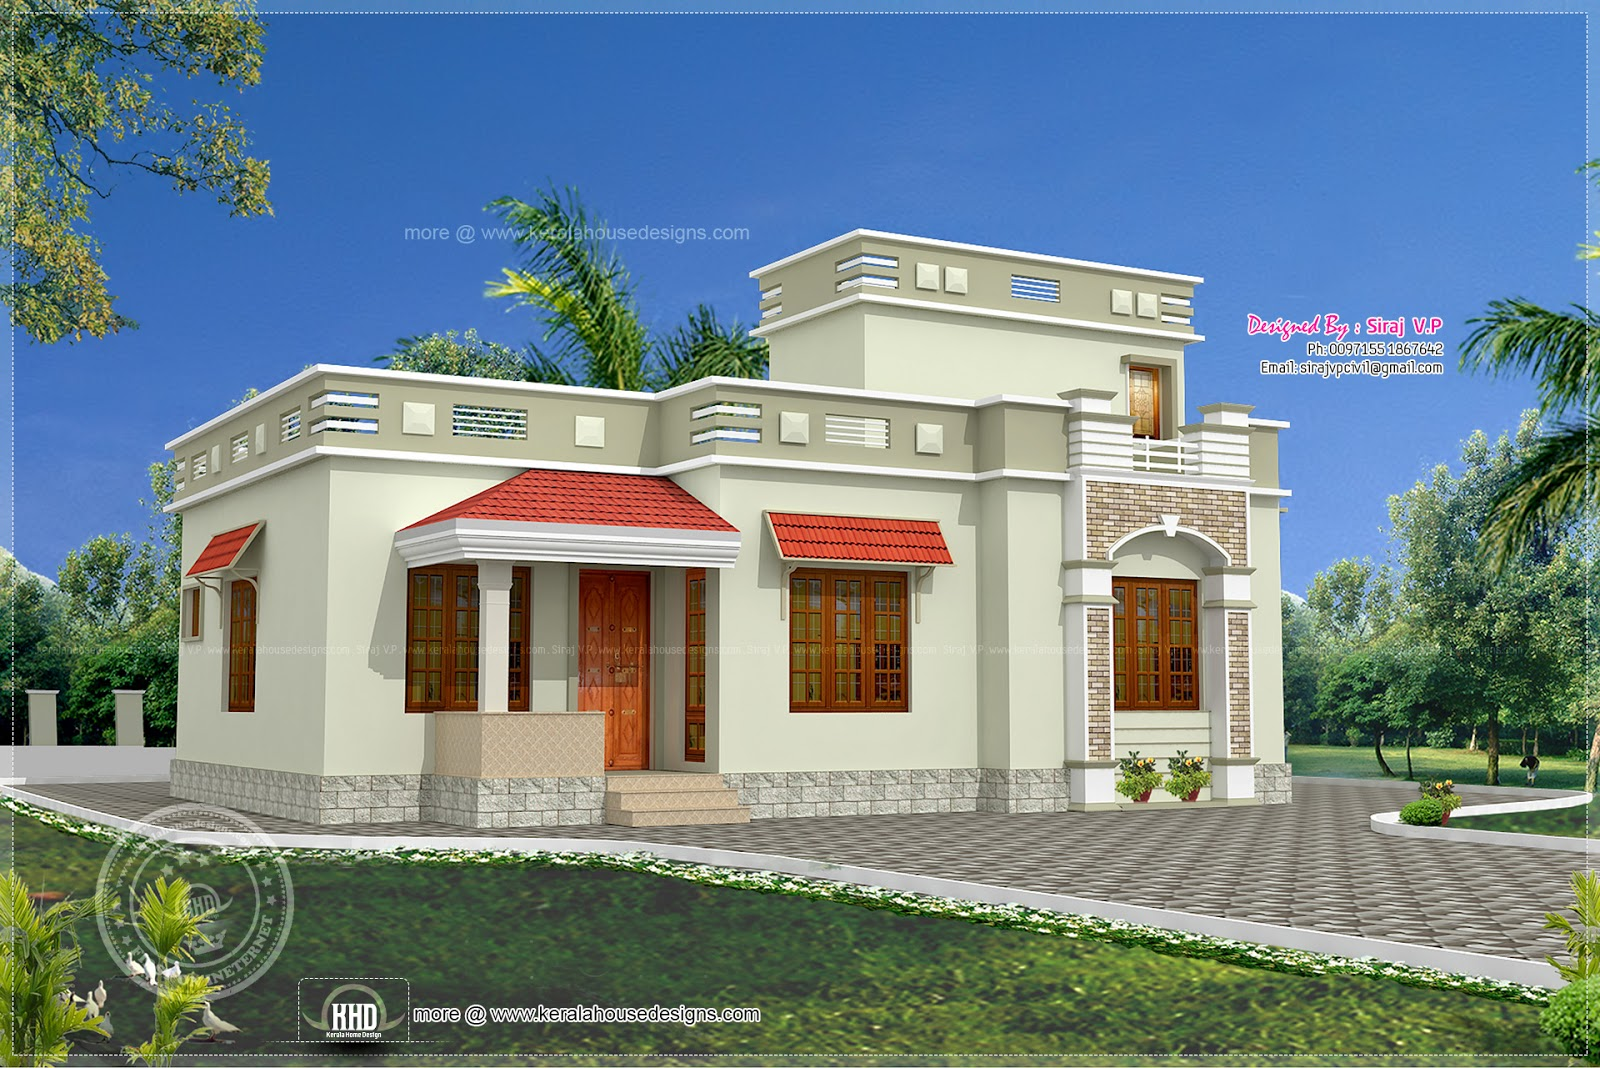 Low budget kerala style home in 1075 kerala home for Low cost house plans in kerala with images